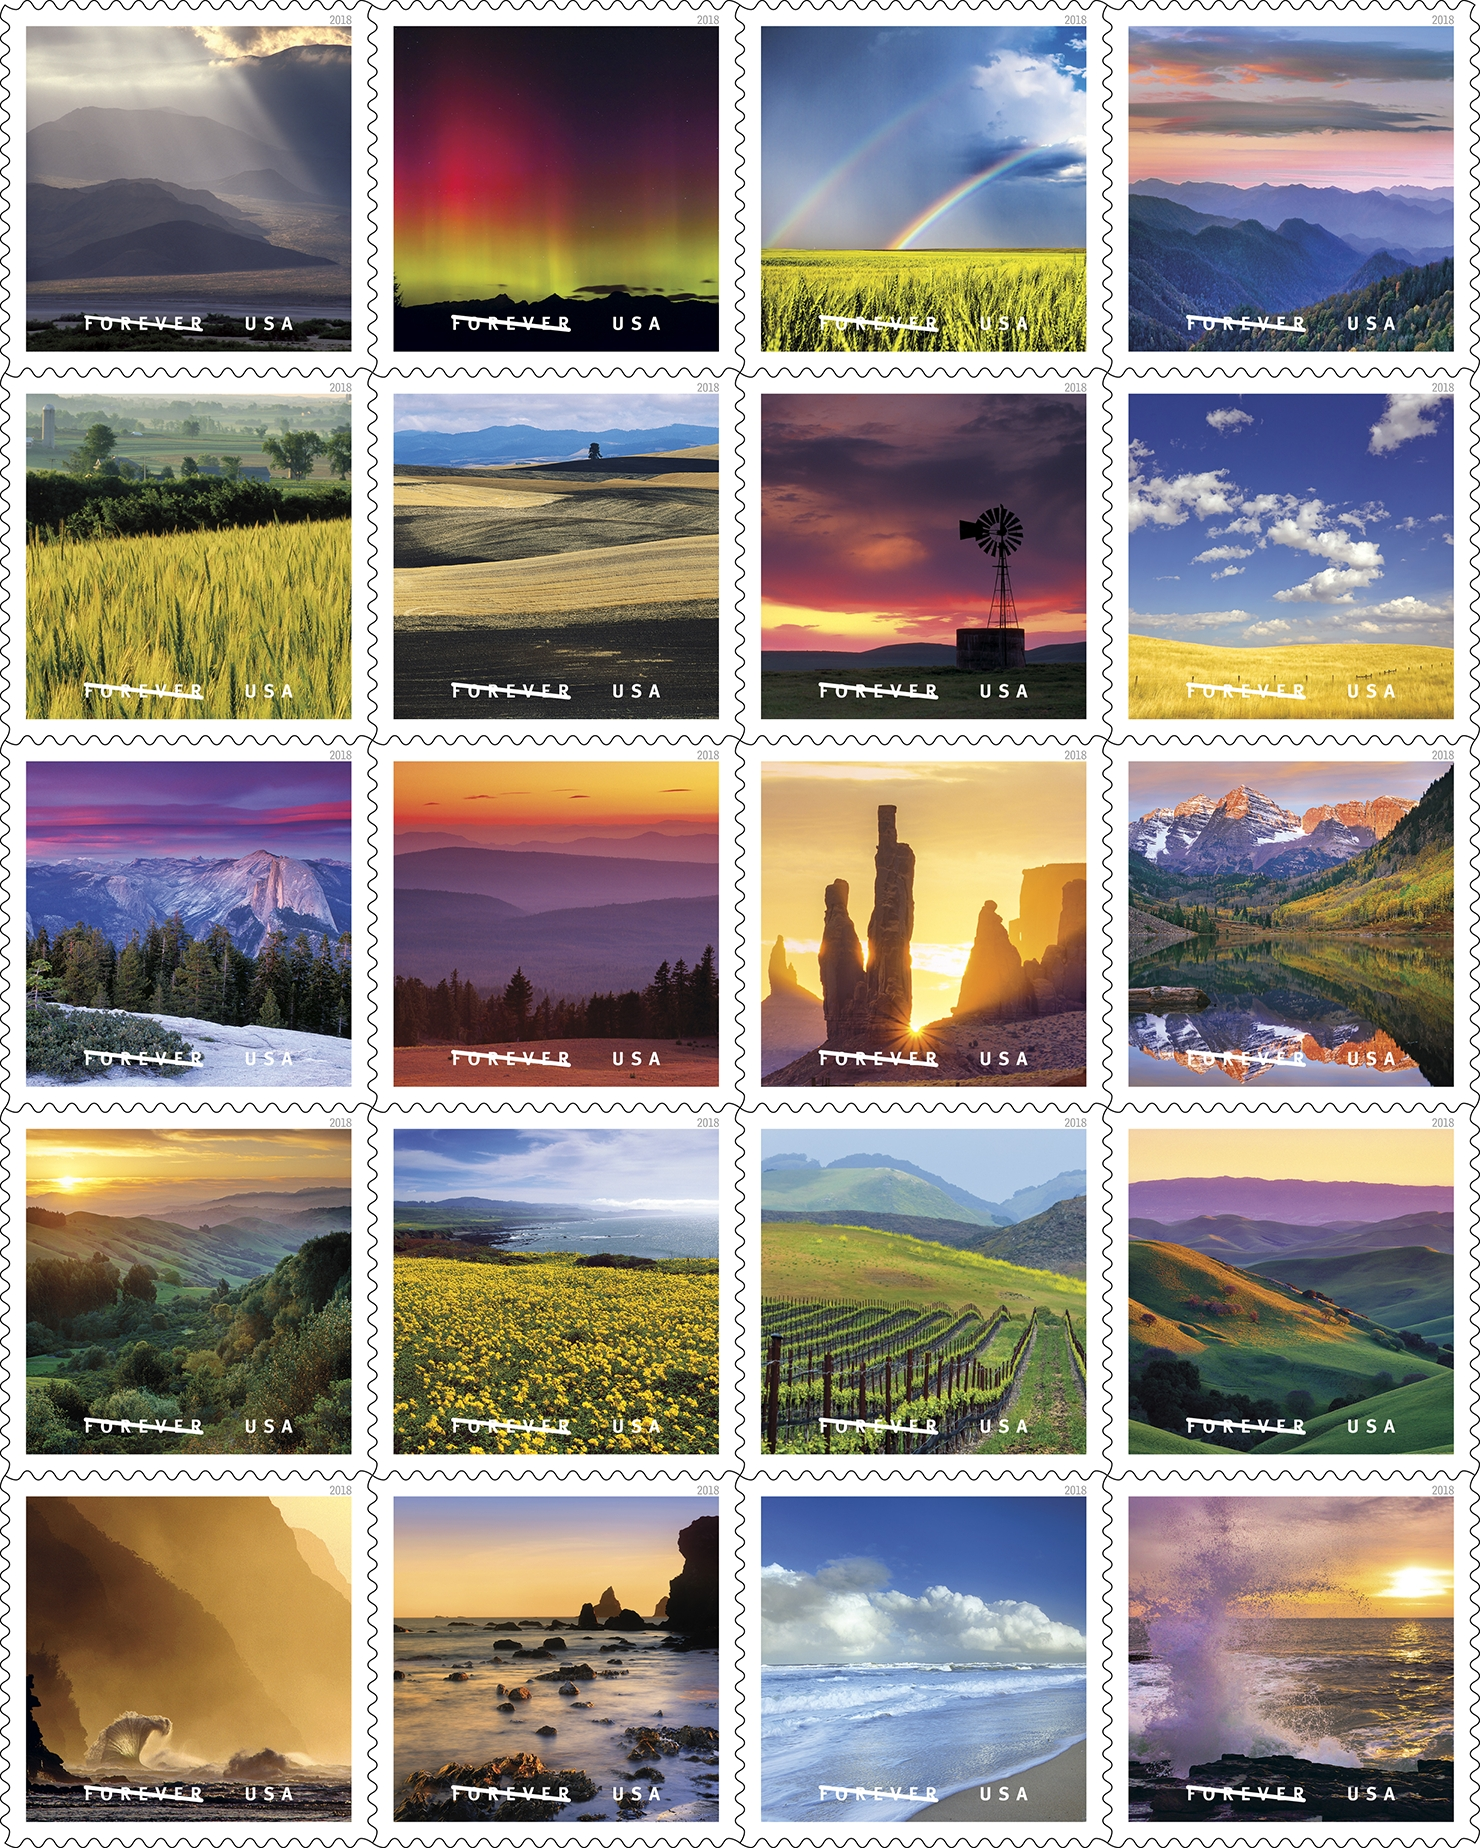 "O Beautiful: With the release of O Beautiful, the Postal Service commemorates the beauty and majesty of the United States through images that correspond with one of the nation's most beloved songs, ""America the Beautiful."" (USPS)"